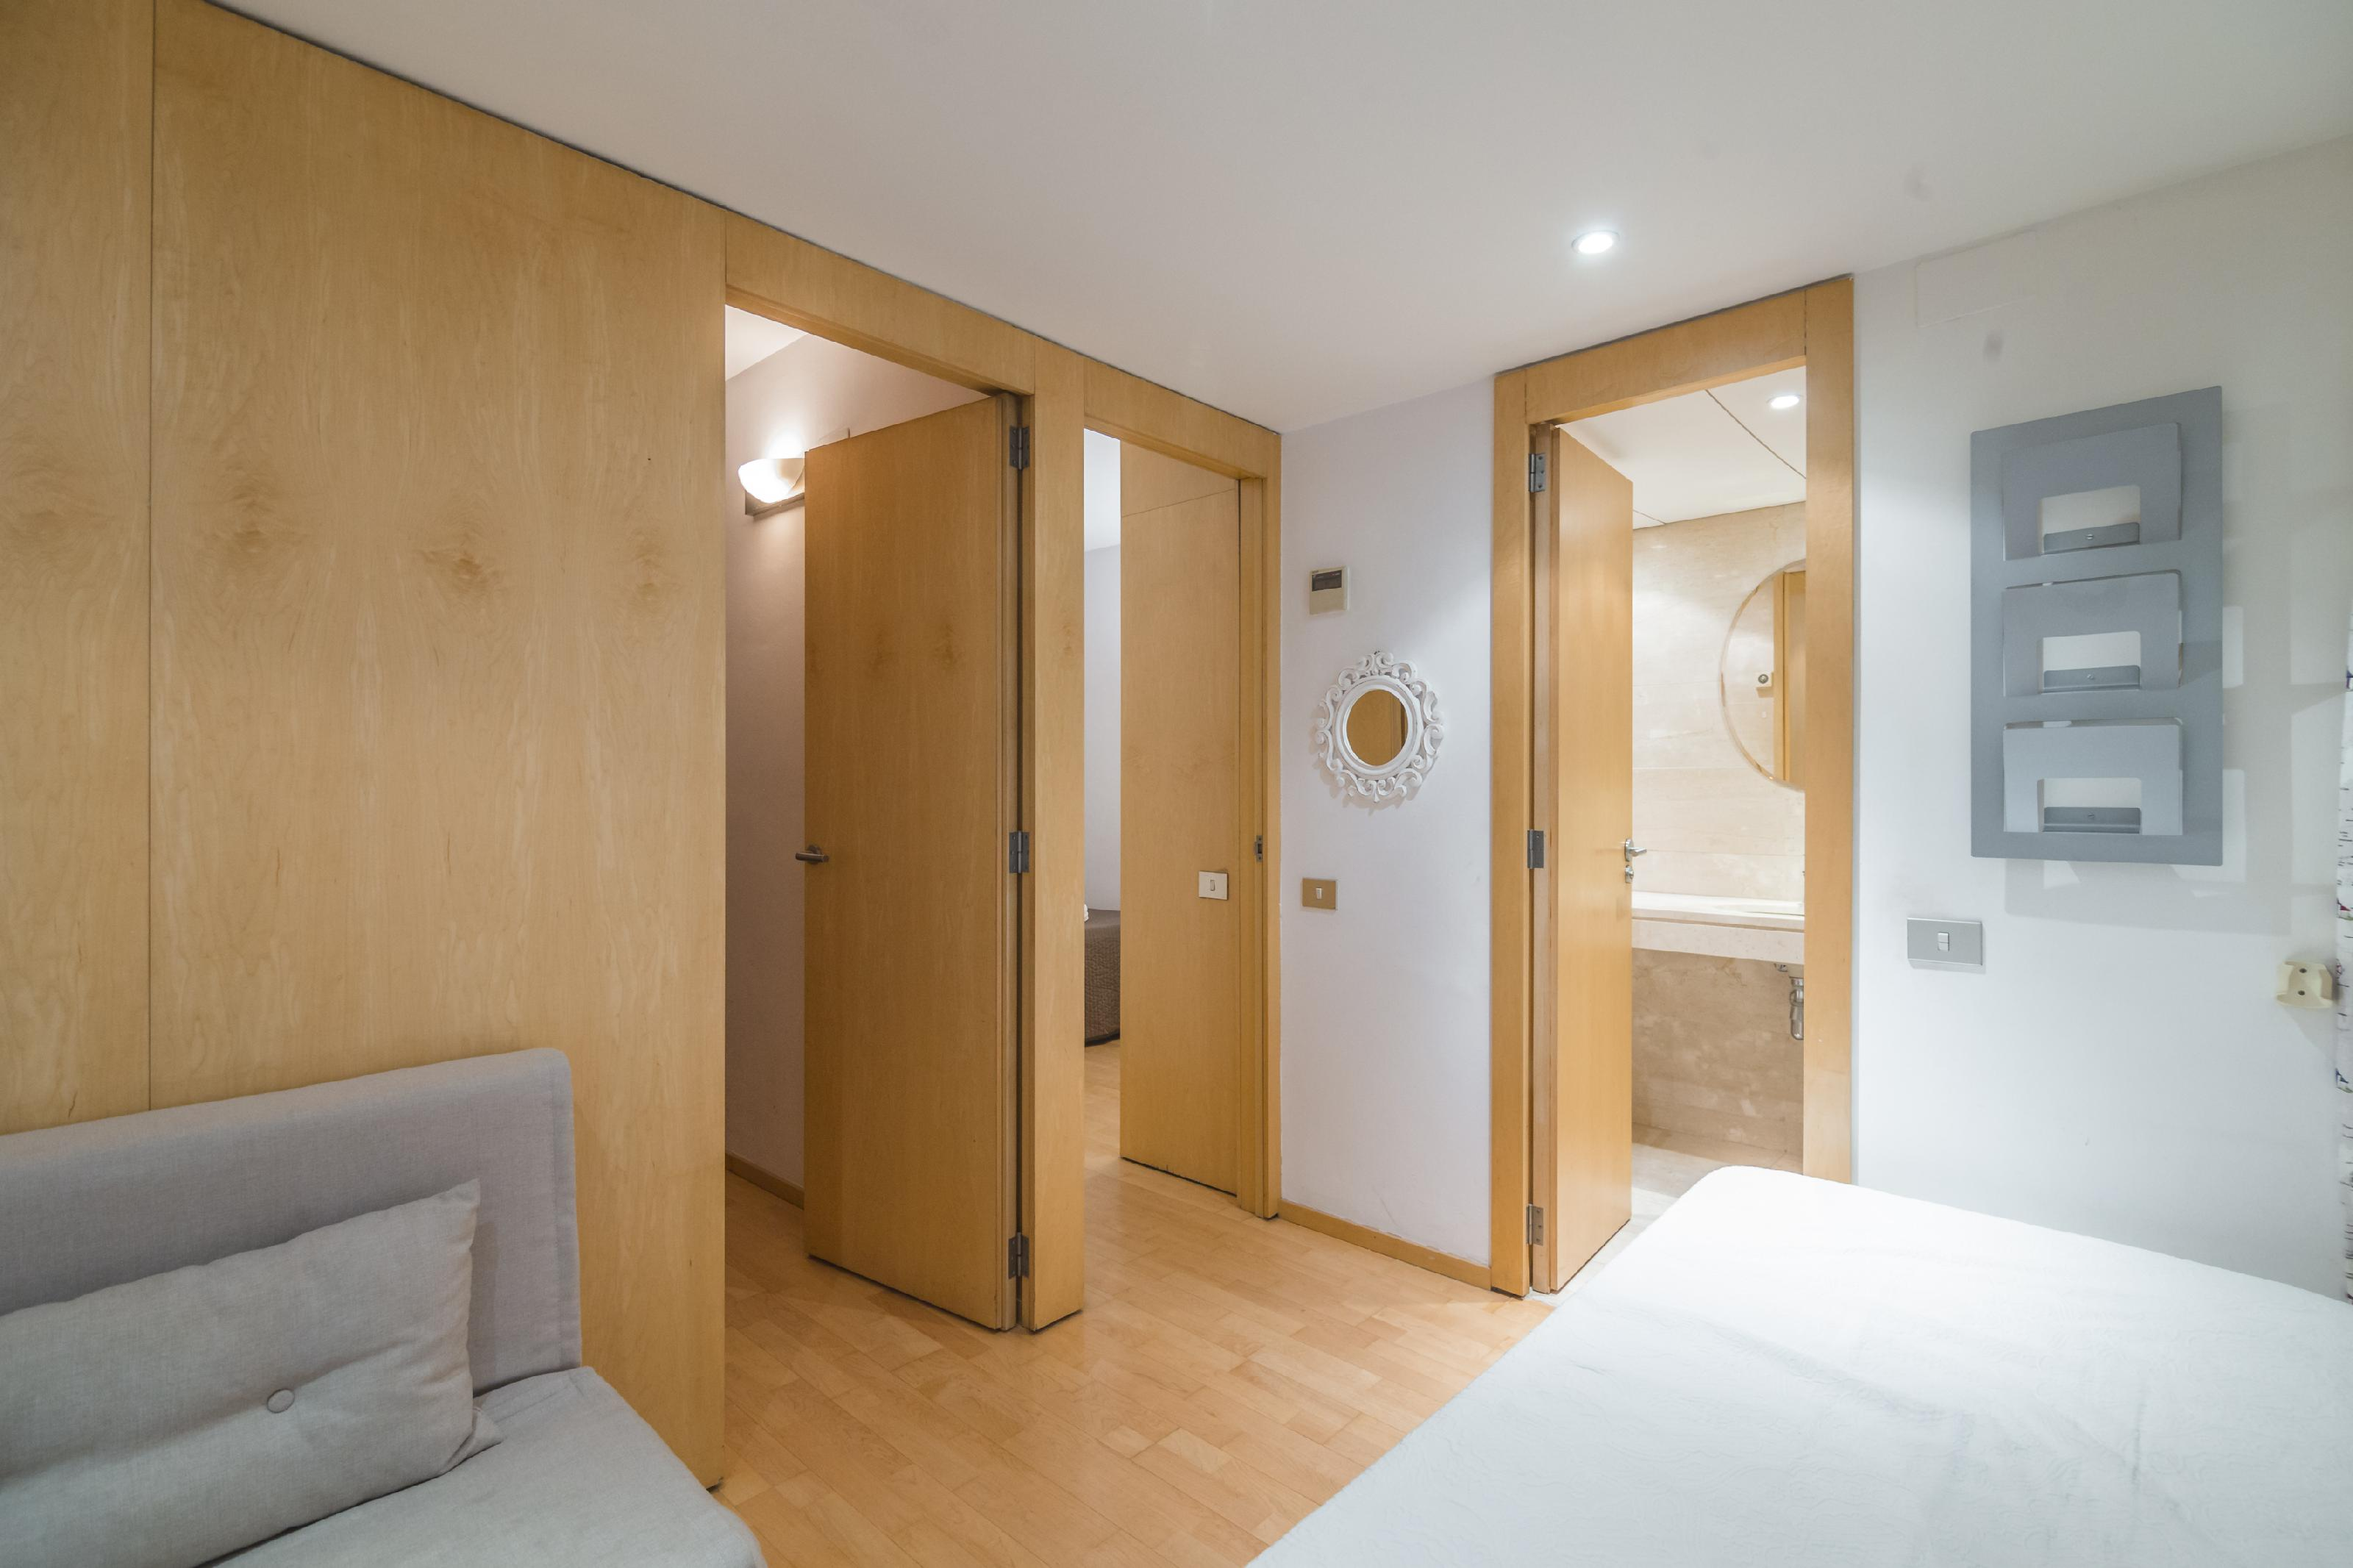 109651 Apartment for sale in Eixample, Dreta Eixample 17